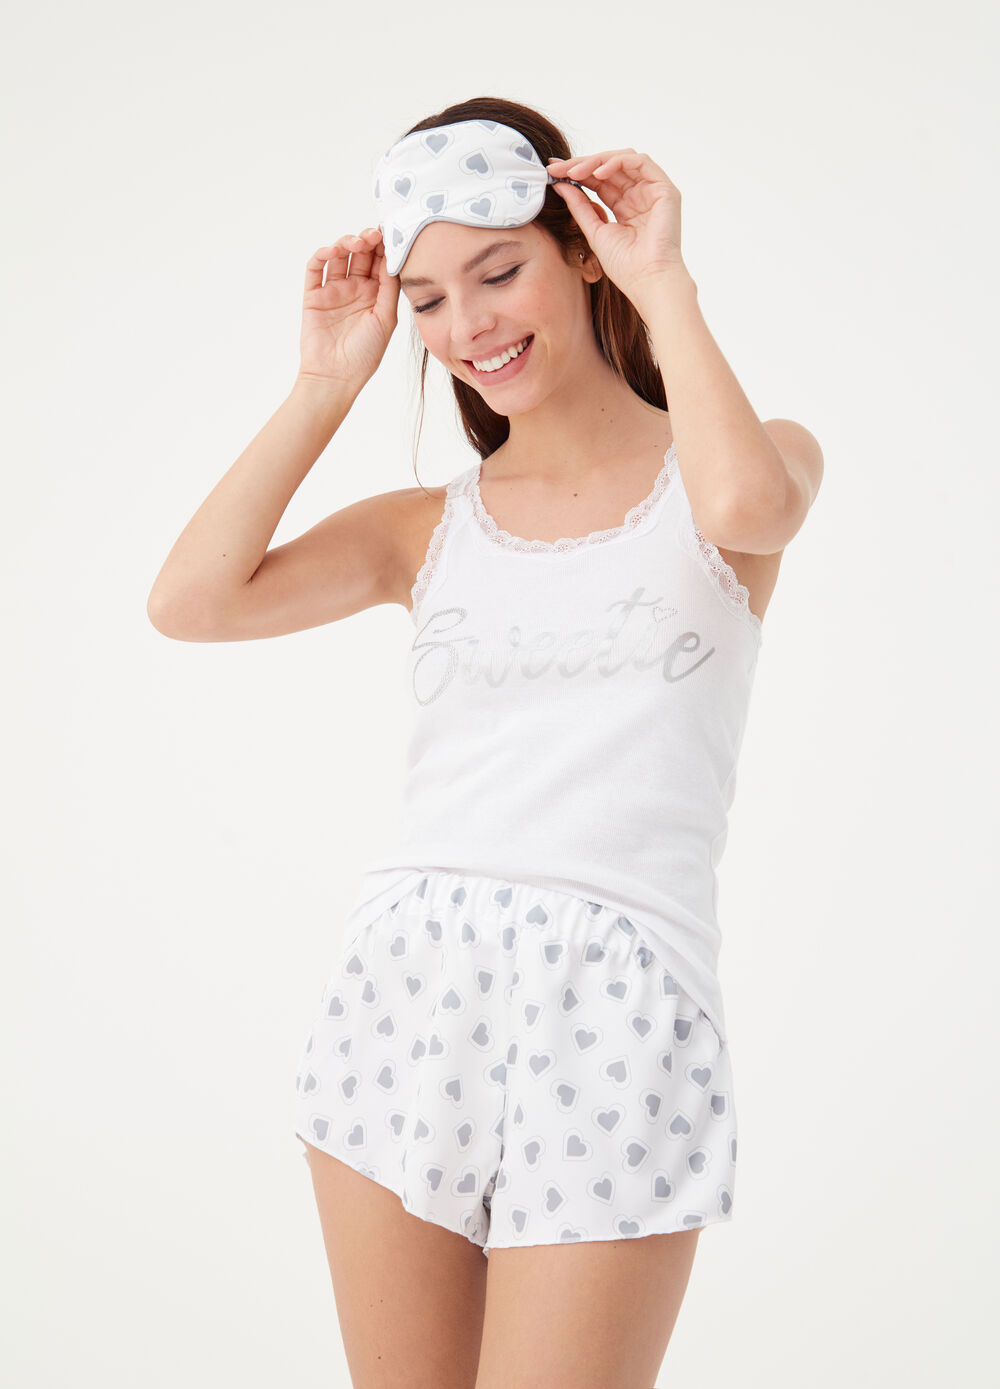 Pyjamas with eye mask and heart pattern